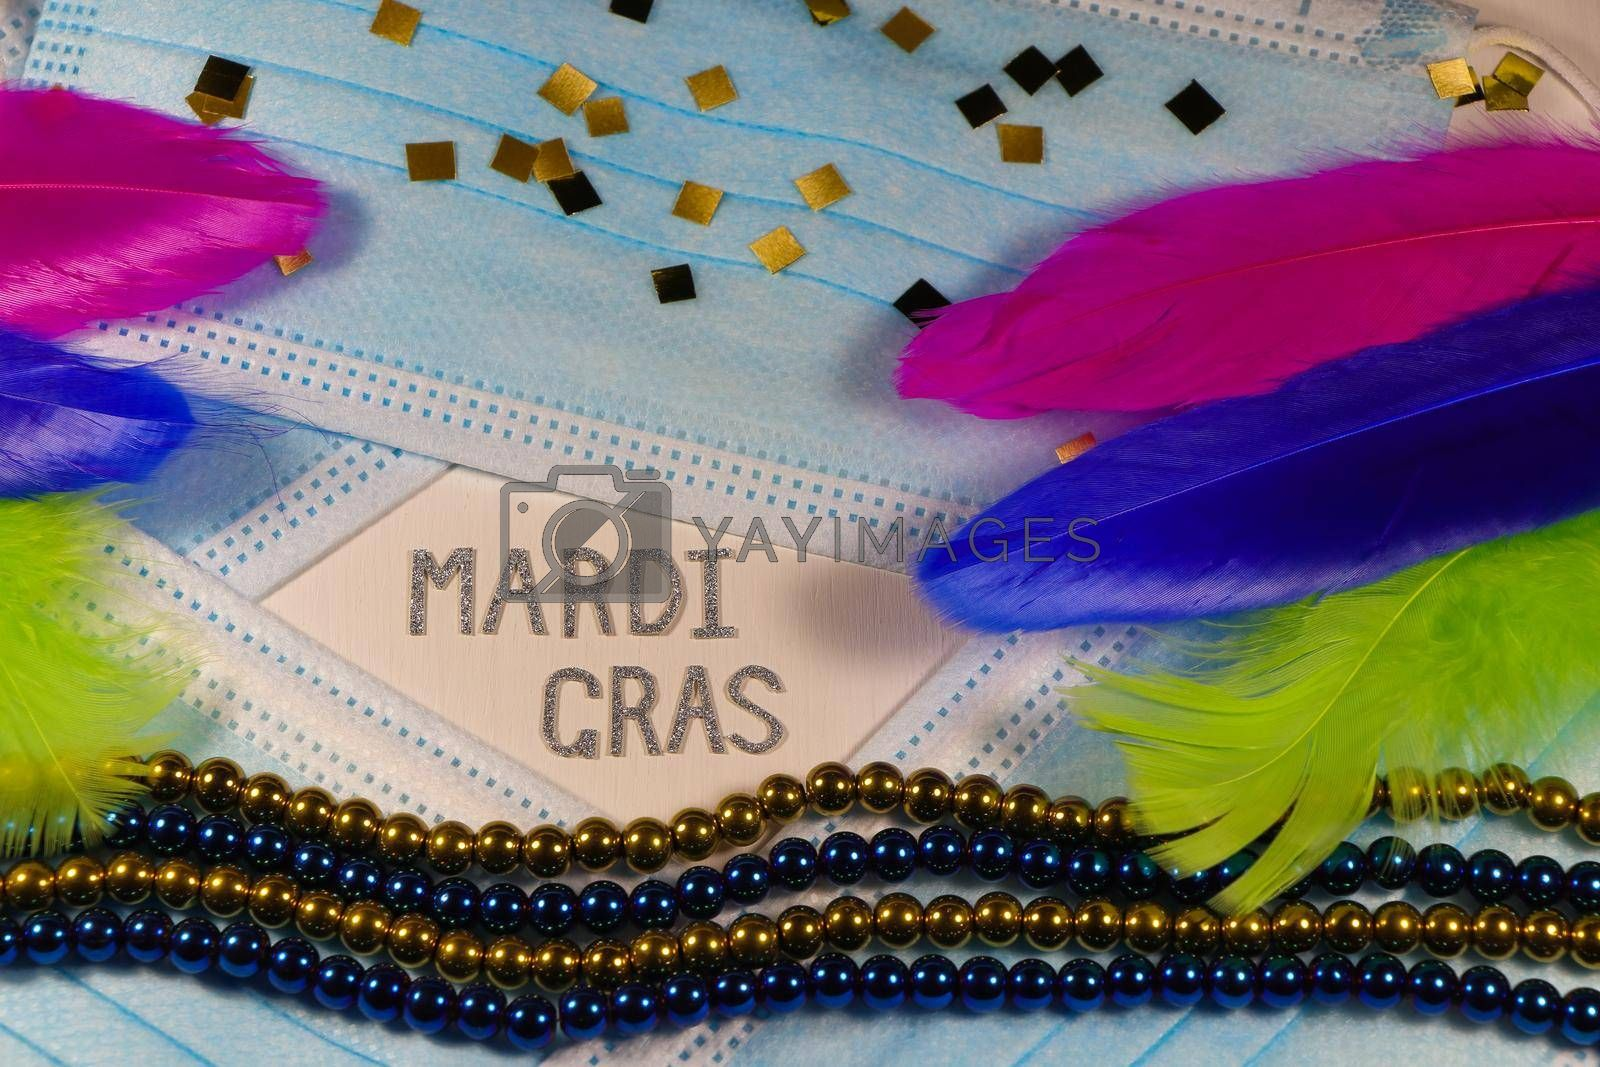 Mardi Gras carnival theme medical facemasks with bead strings and feathers layout on white